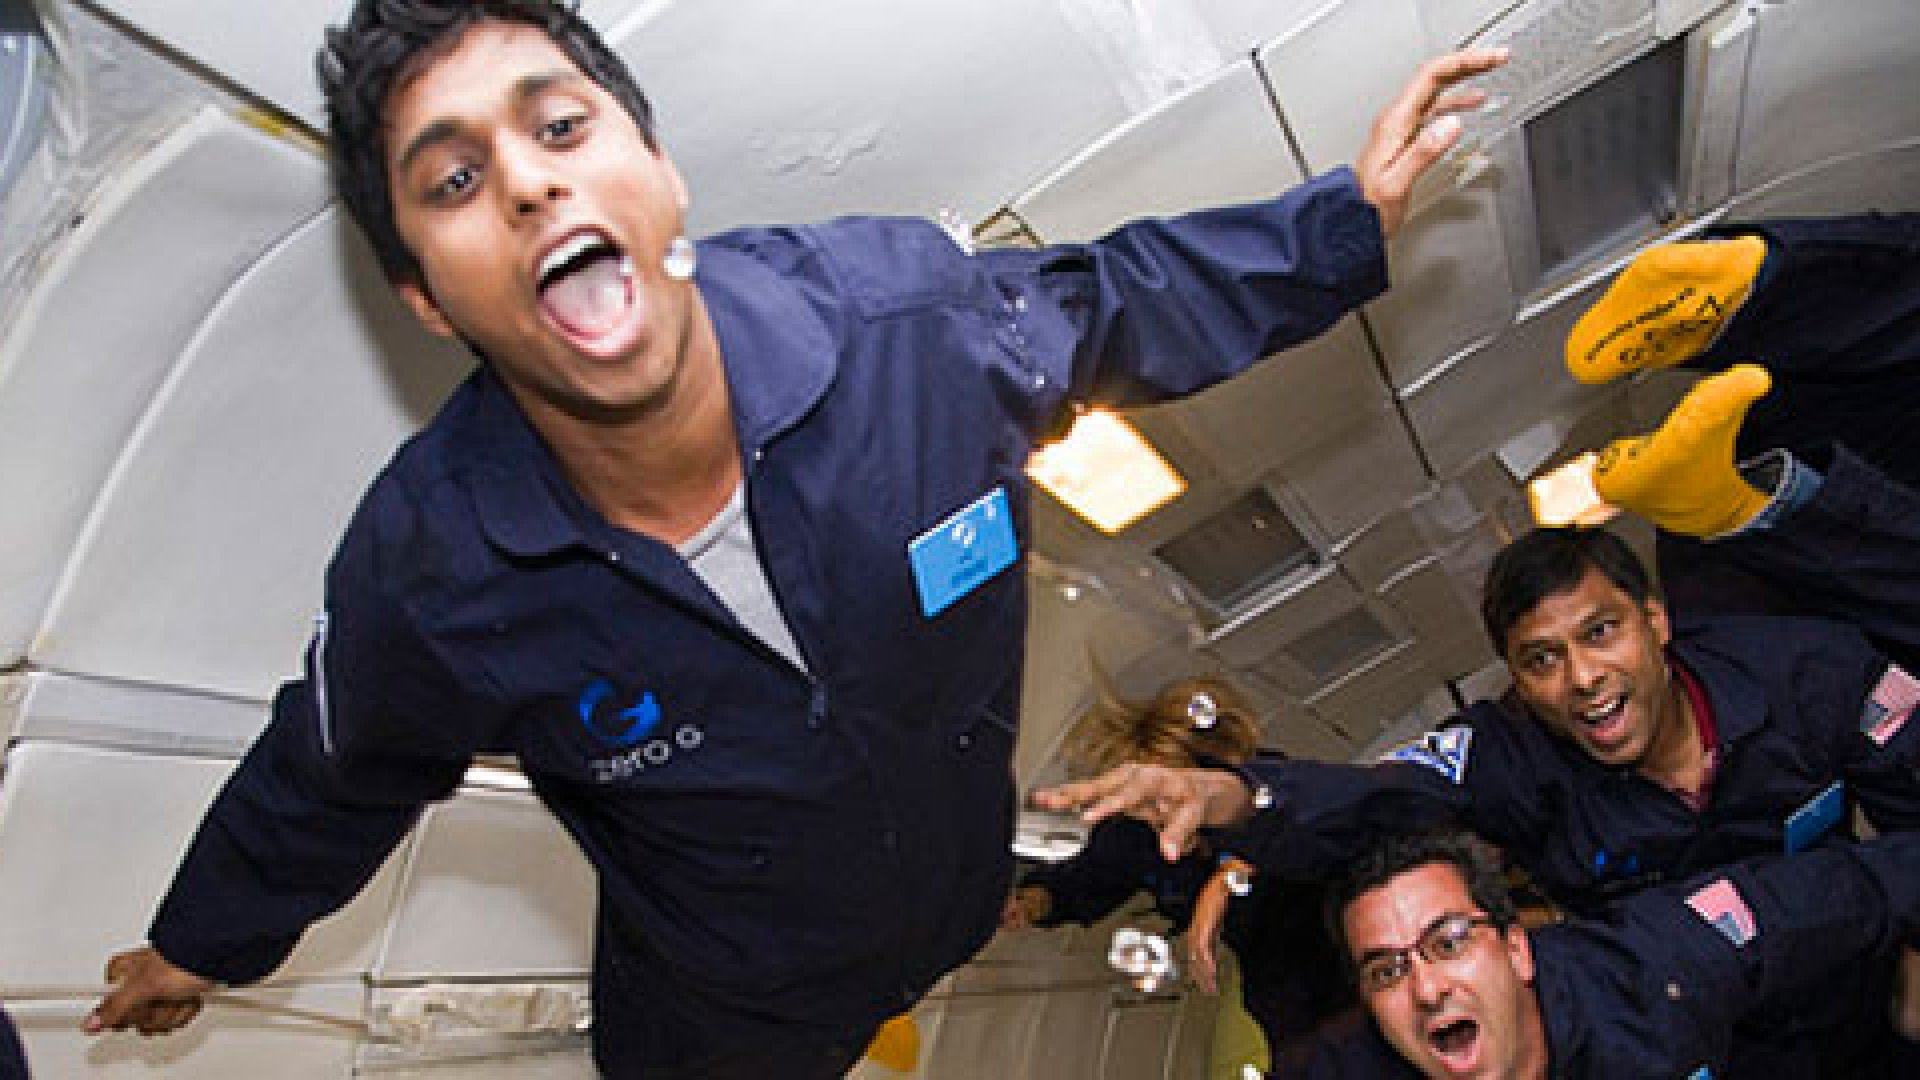 Ankur Jain (front) enjoying weightlessness with the ZERO-G experience with his father Naveen (back right).